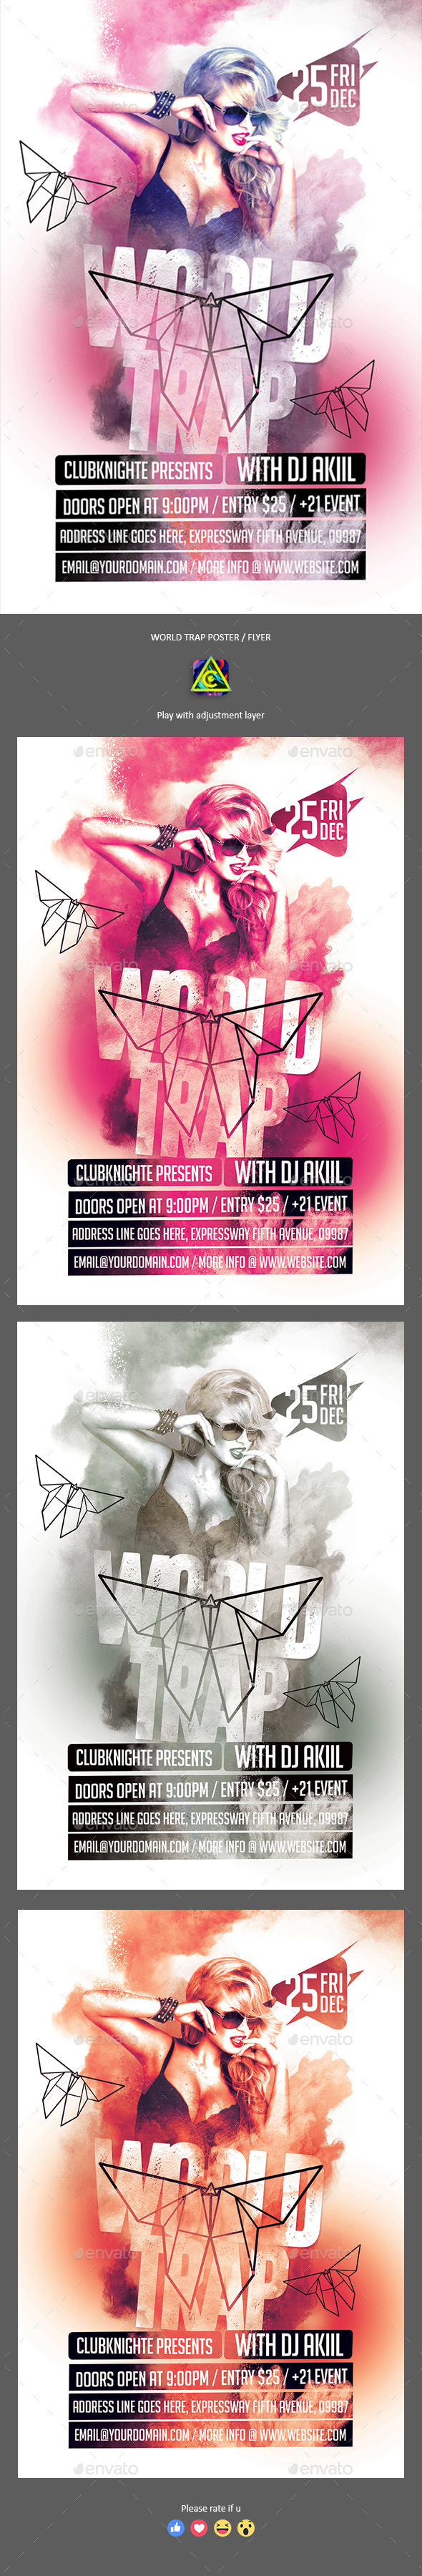 World Trap Poster / Flyer - Clubs & Parties Events